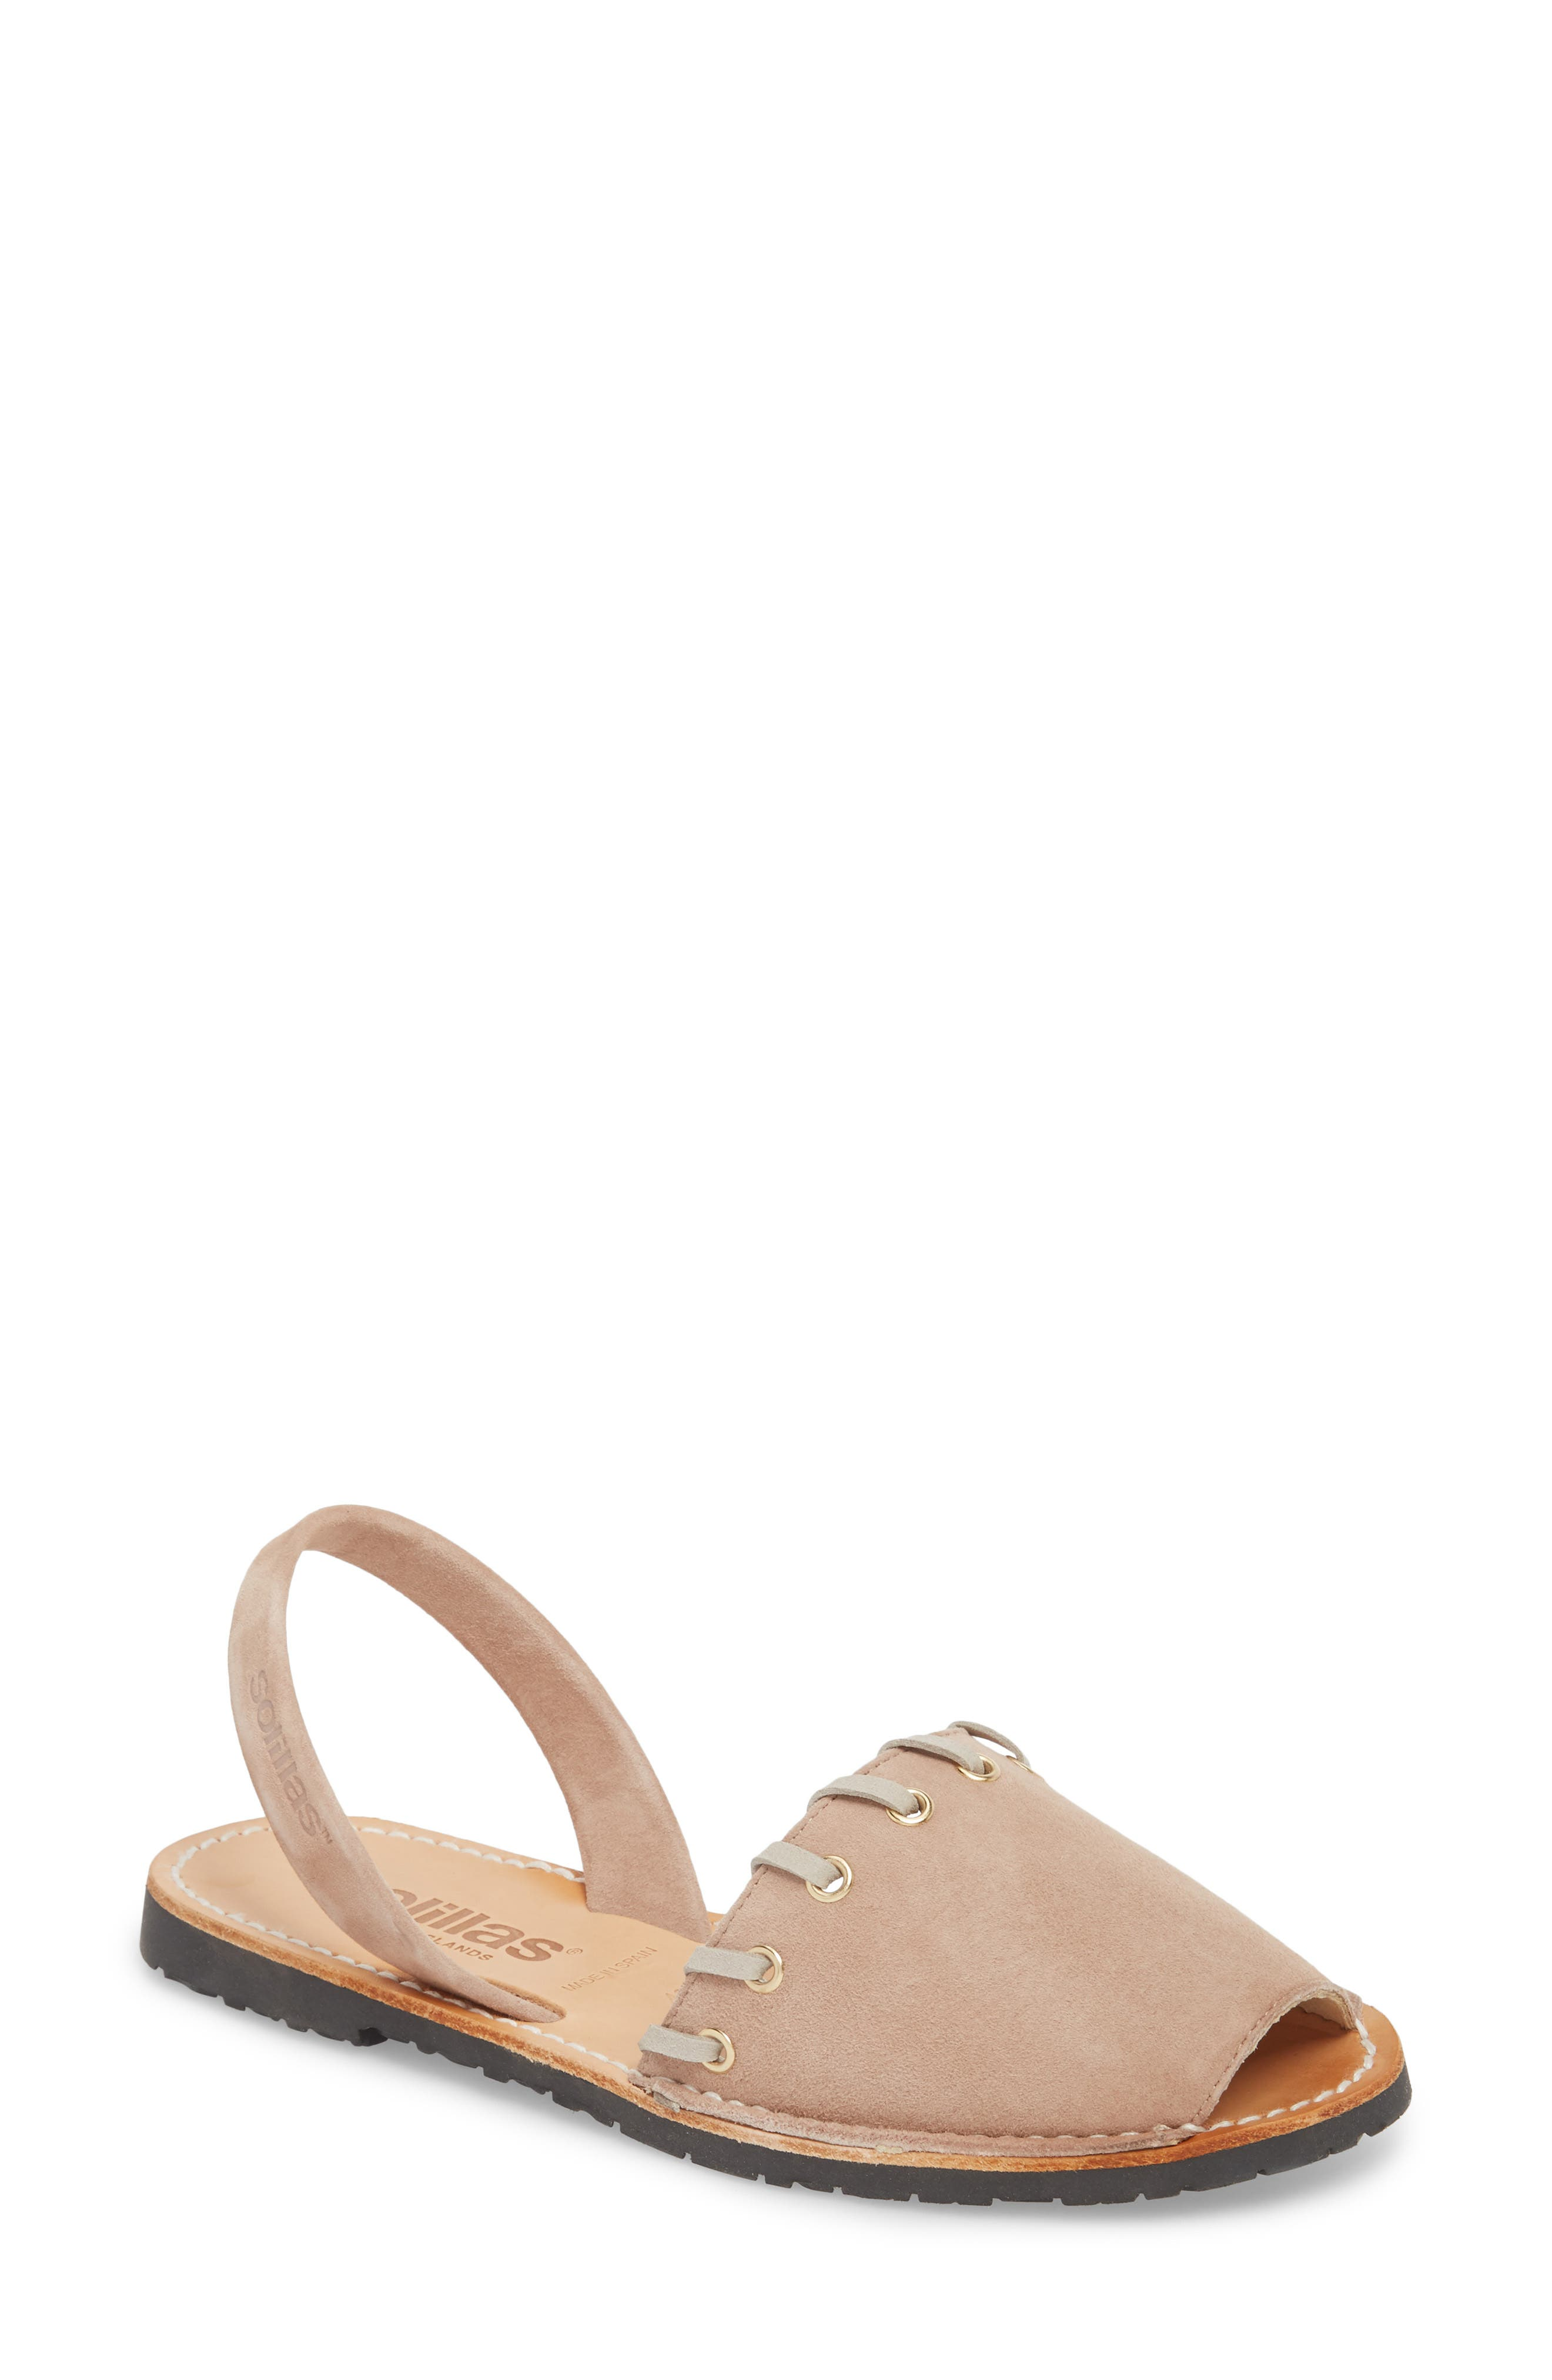 Whipstitched Flat Sandal,                         Main,                         color, 060